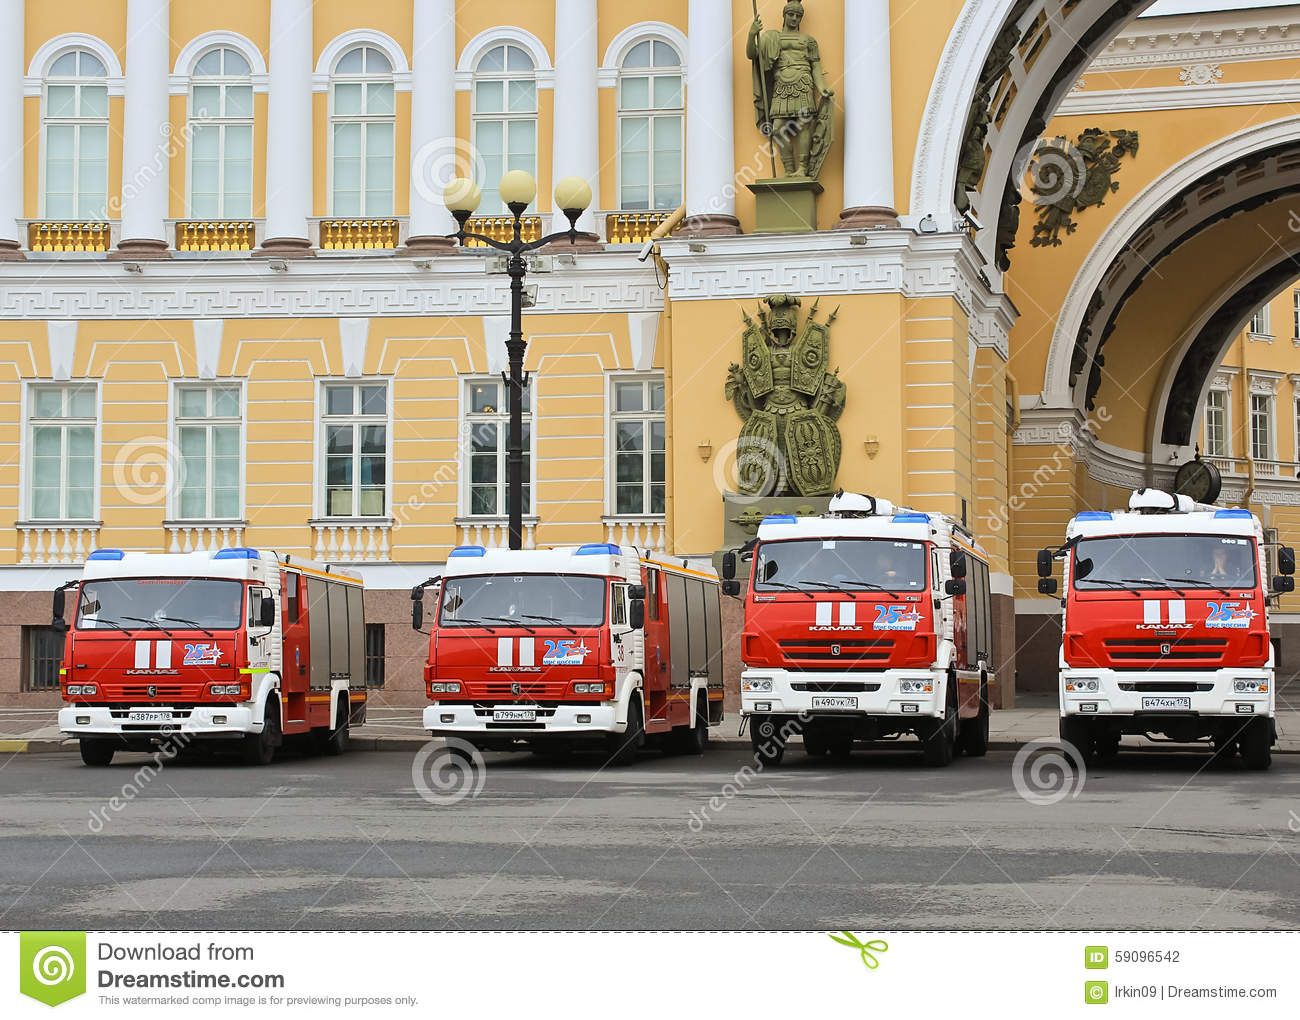 Fire & Rescue Saint-Petersburg, Russia Editorial Photography - Image